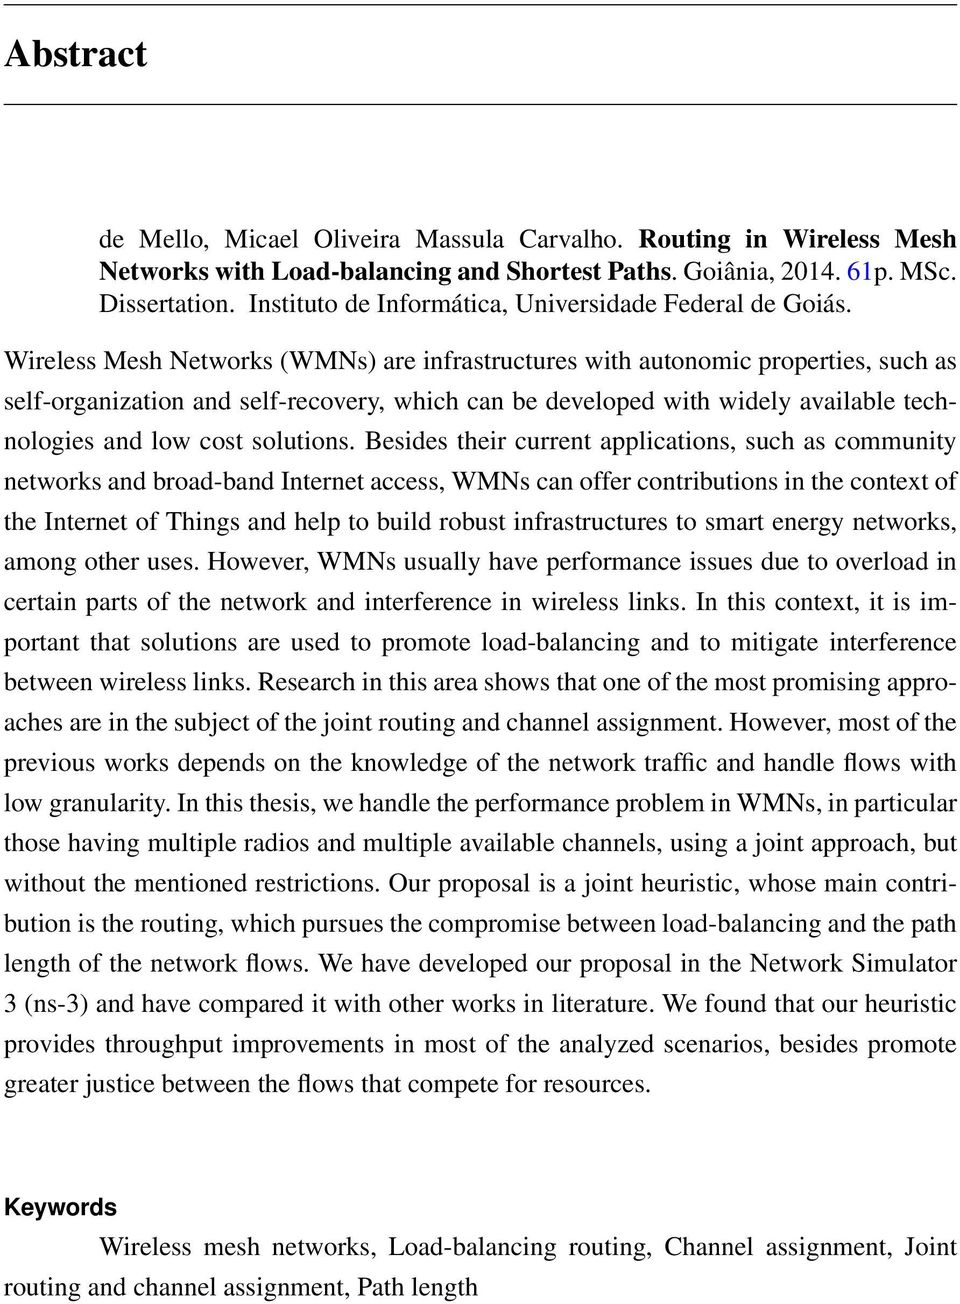 Wireless Mesh Networks (WMNs) are infrastructures with autonomic properties, such as self-organization and self-recovery, which can be developed with widely available technologies and low cost